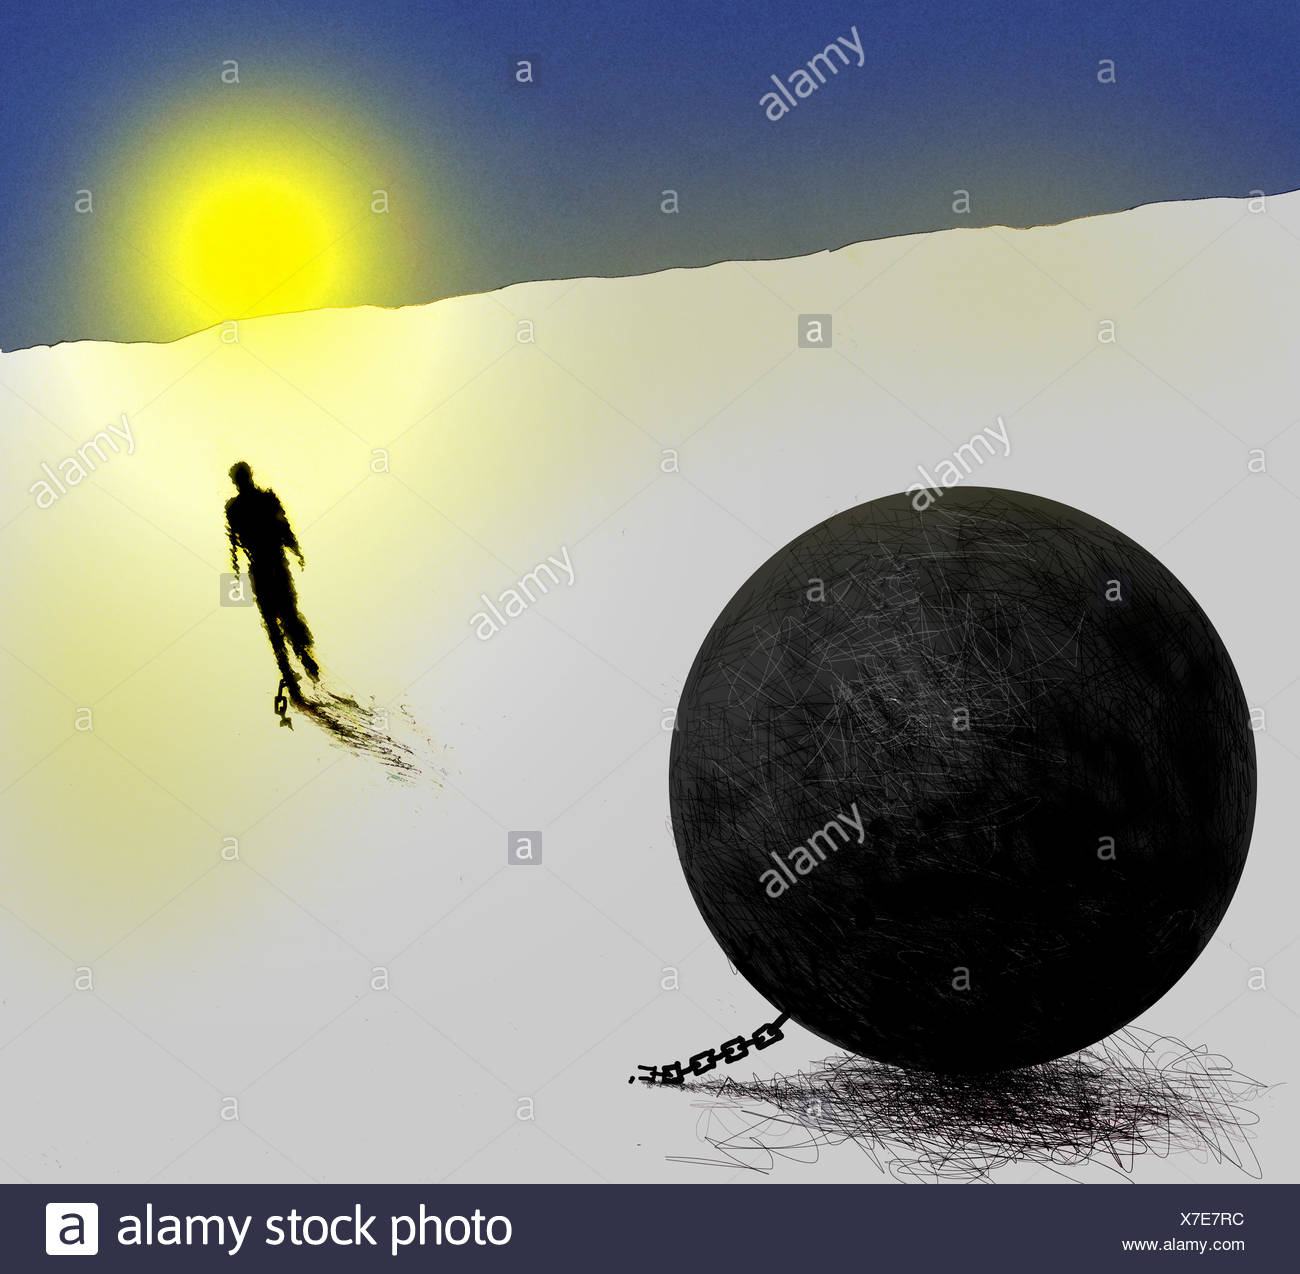 Man breaking free from ball and chain - Stock Image